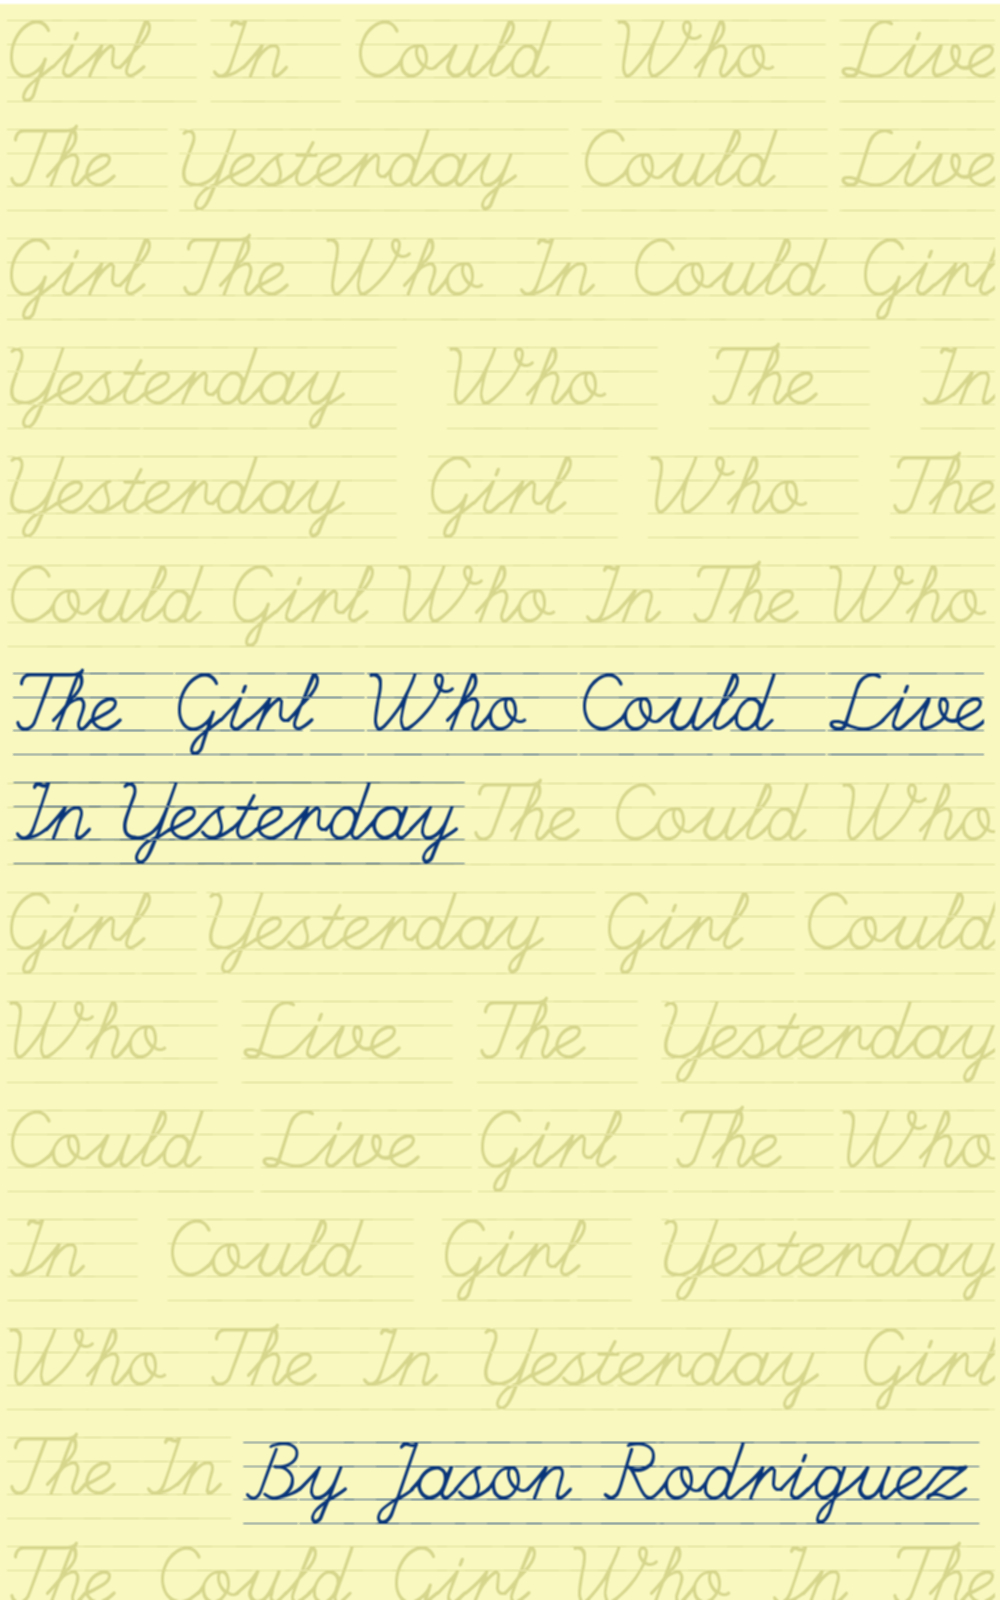 girl-who-could-live-in-yesterday-bcd6c3e01daa426a23f722dded61edfdbd783281